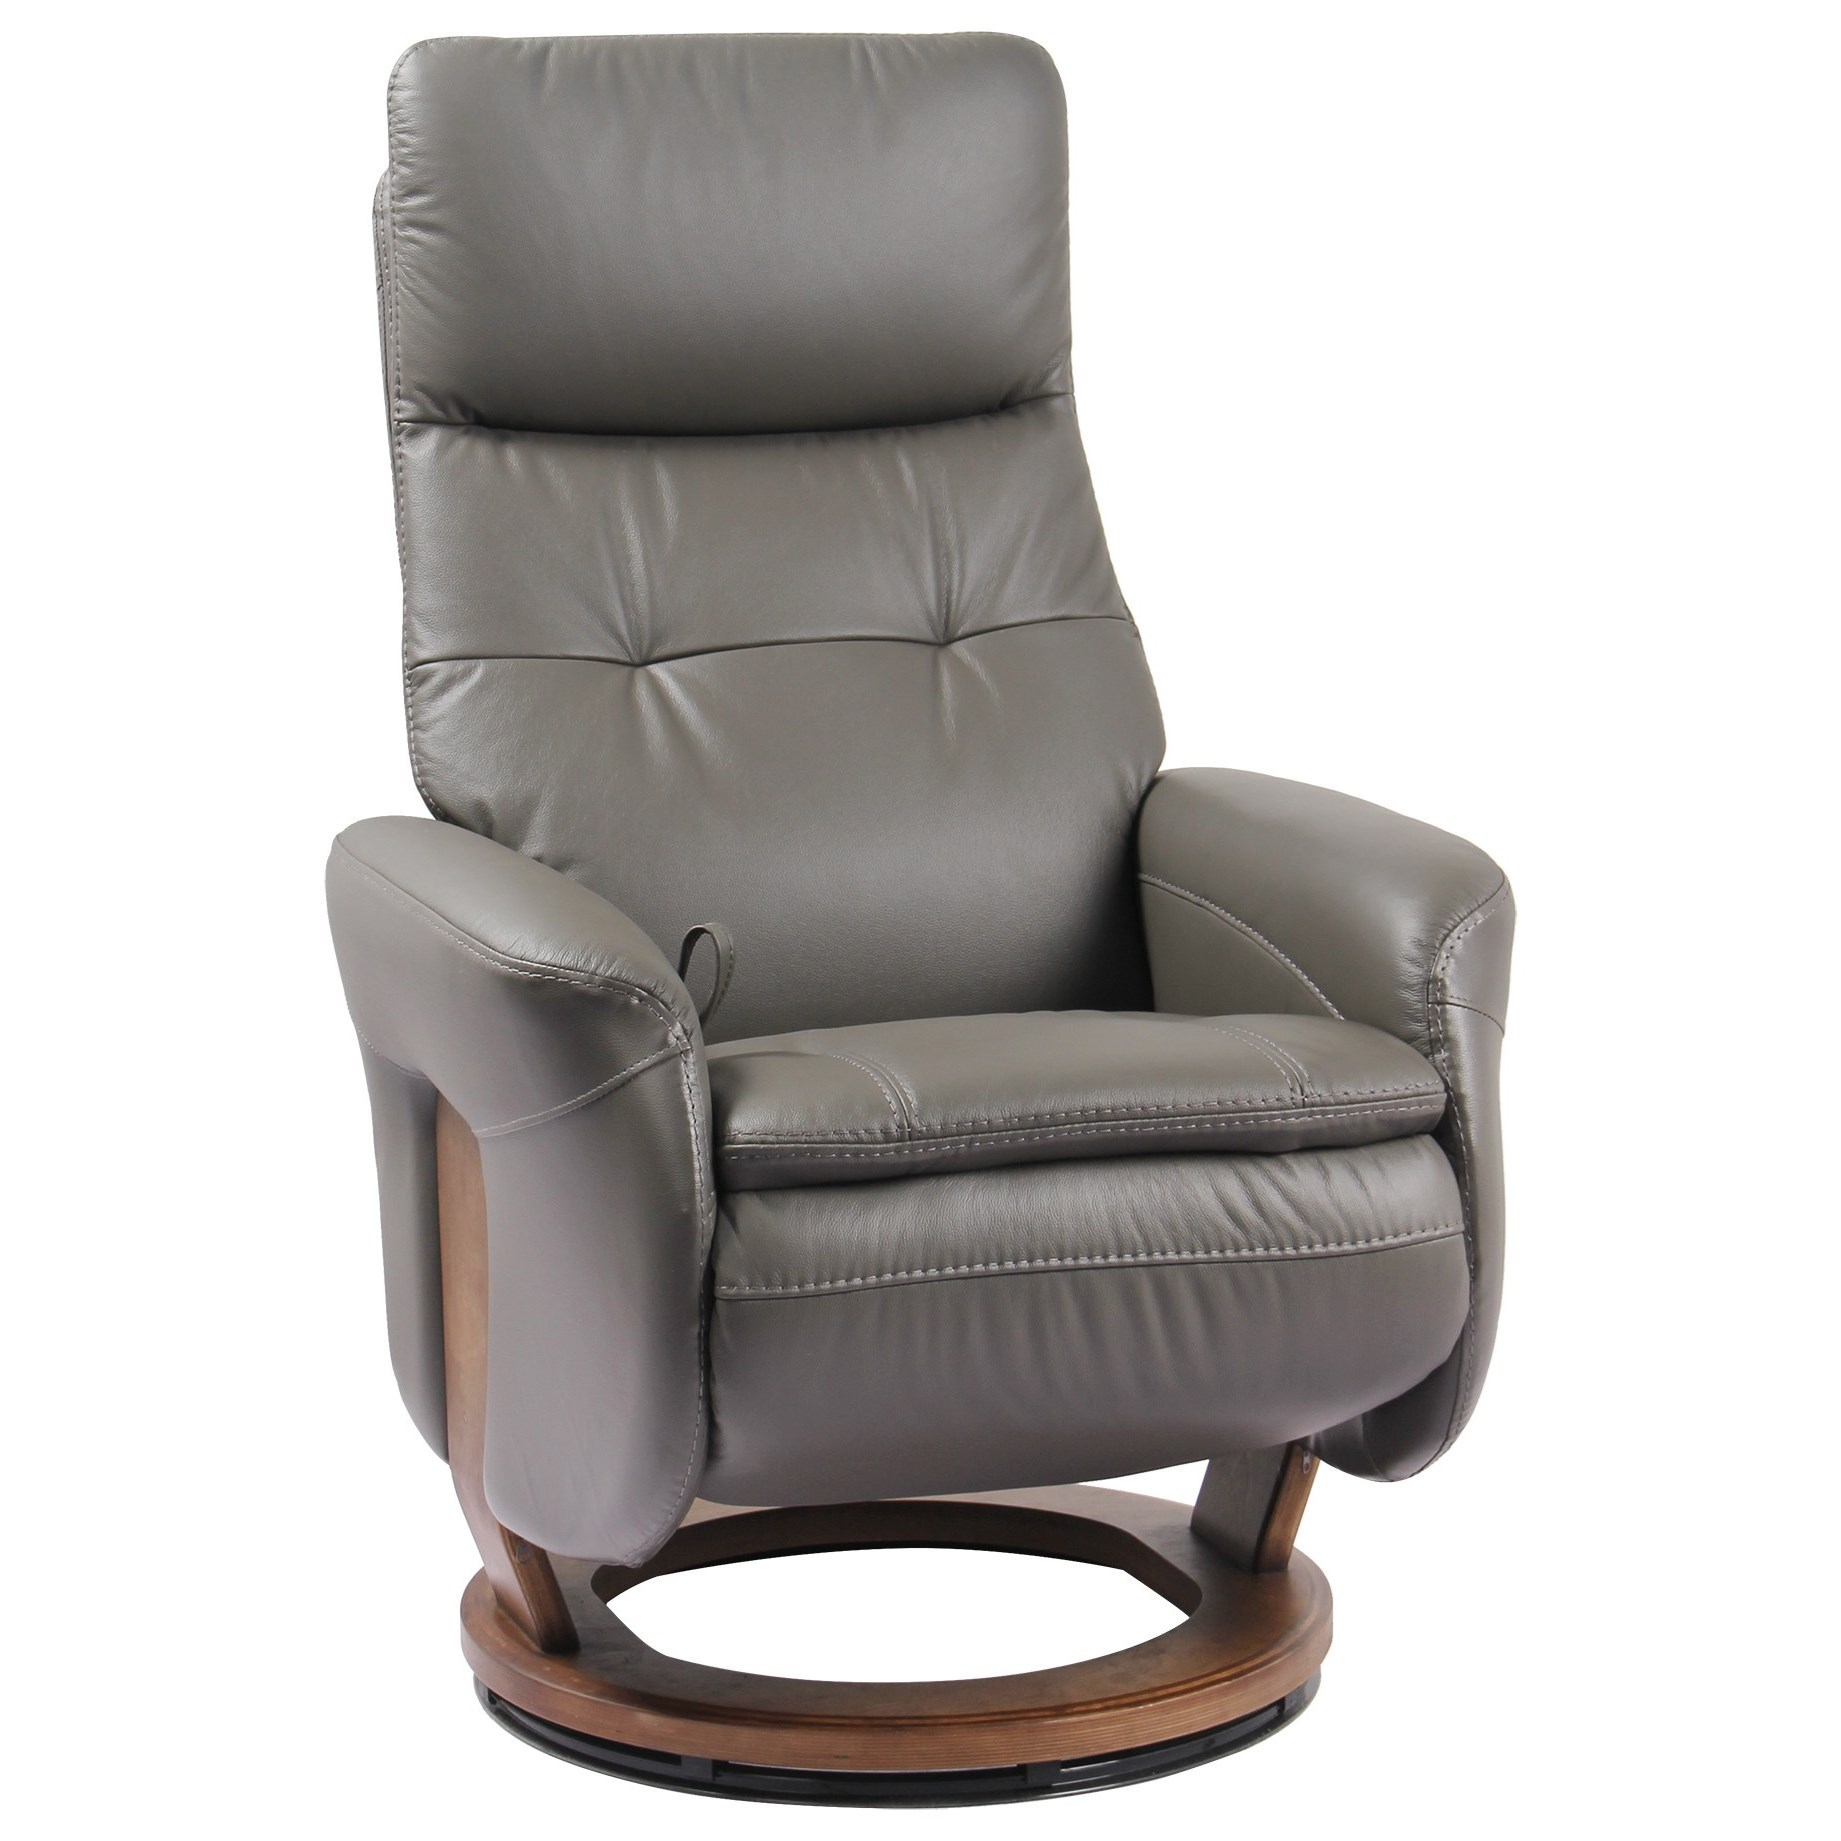 Benchmaster Francesca Reclining Chair   Item Number: 7745A 088